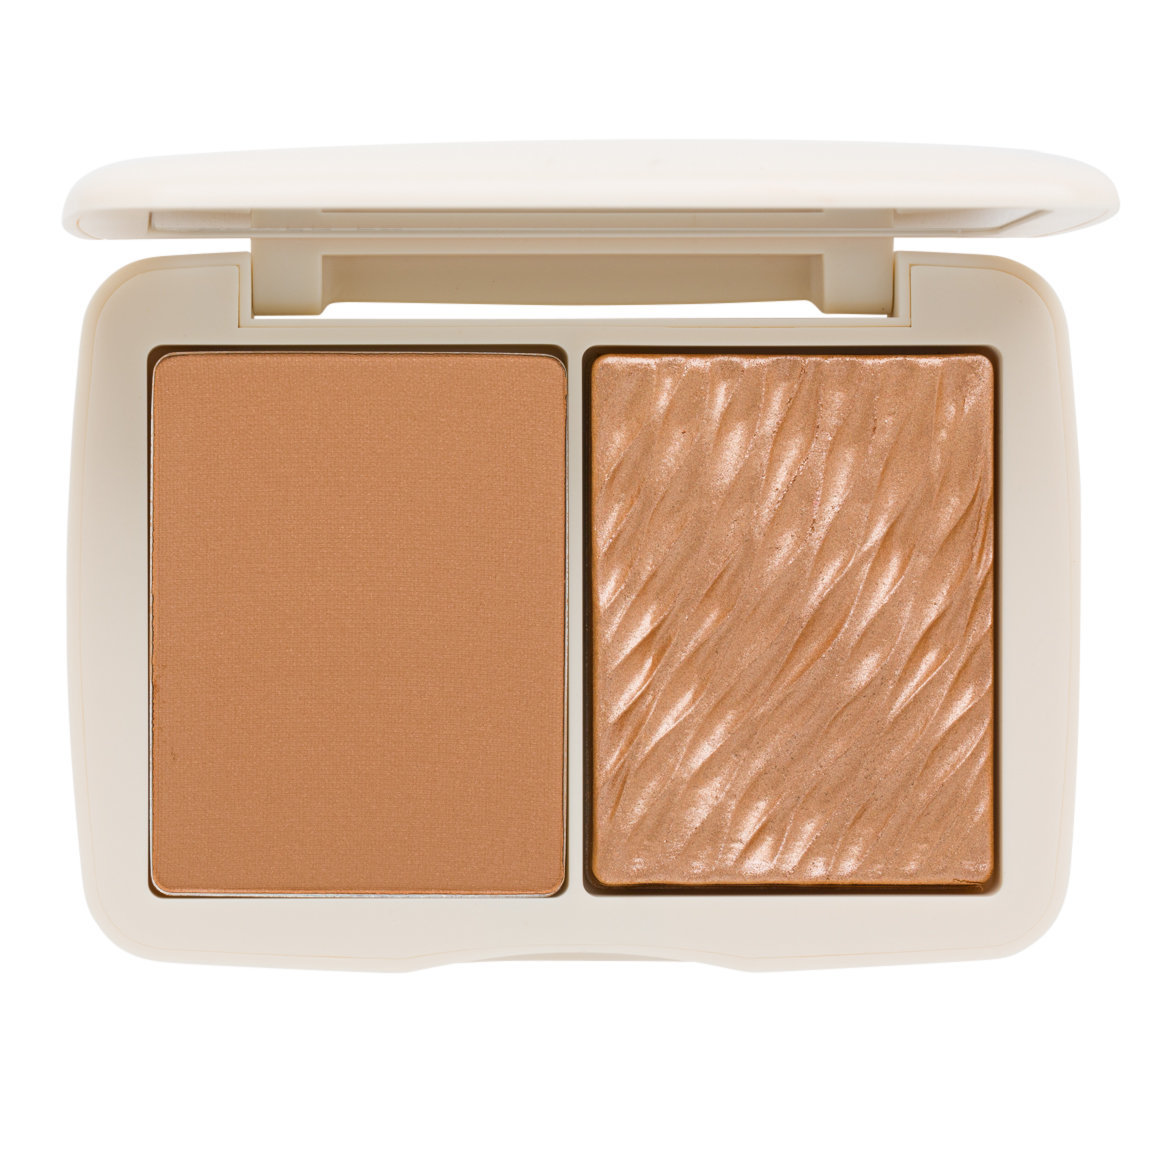 COVER | FX Monochromatic Bronzer Duo Sunkissed Bronze product smear.